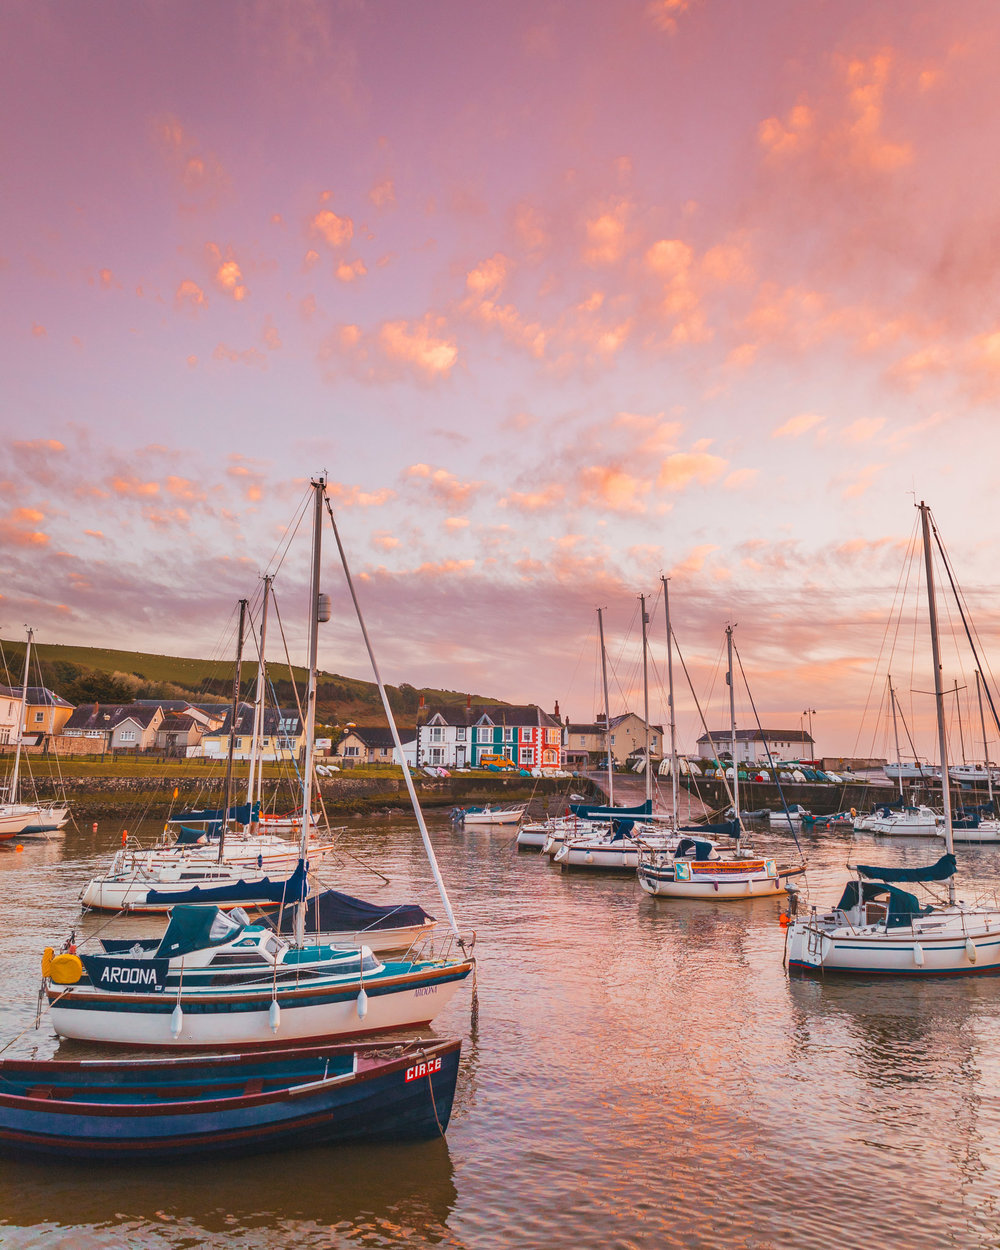 Aberaeron harbour sunset // The Most Beautiful Places to Visit in Wales // #readysetjetset #wales #uk #welsh #travel #photospots #blogpost